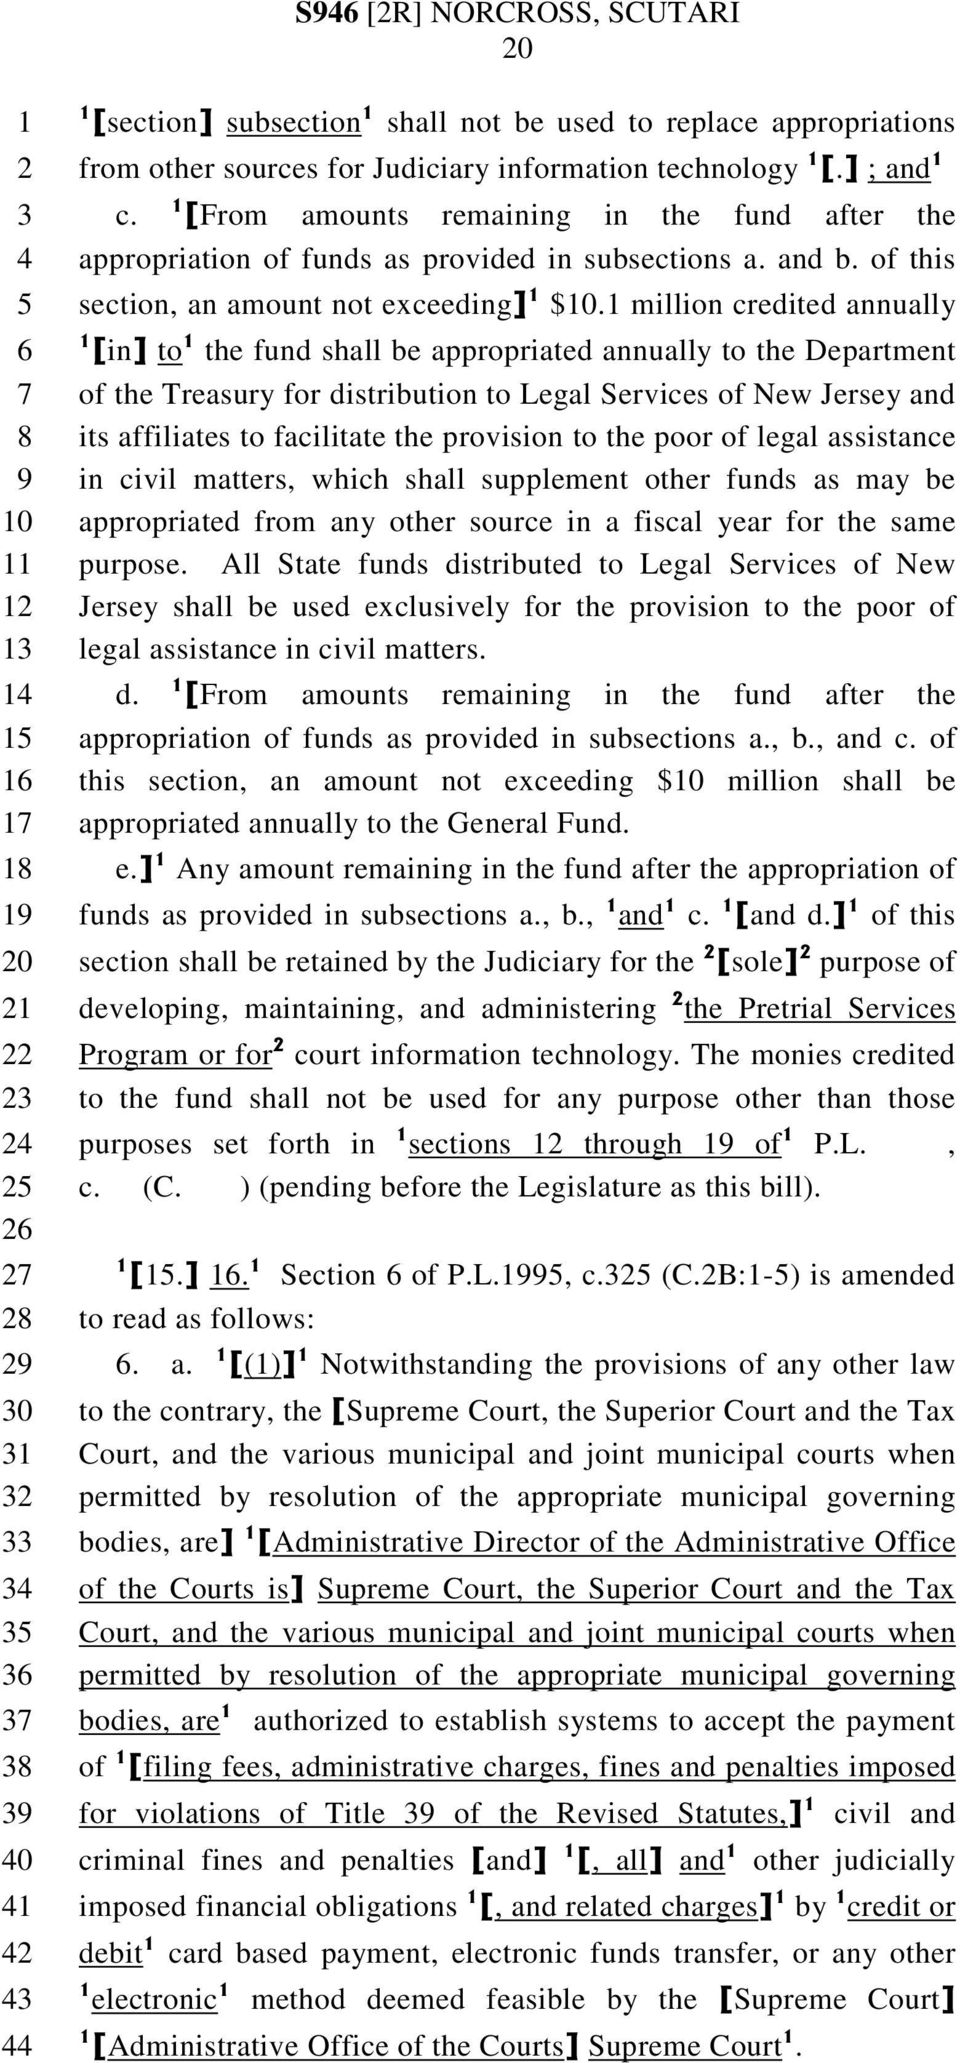 million credited annually [in] to the fund shall be appropriated annually to the Department of the Treasury for distribution to Legal Services of New Jersey and its affiliates to facilitate the